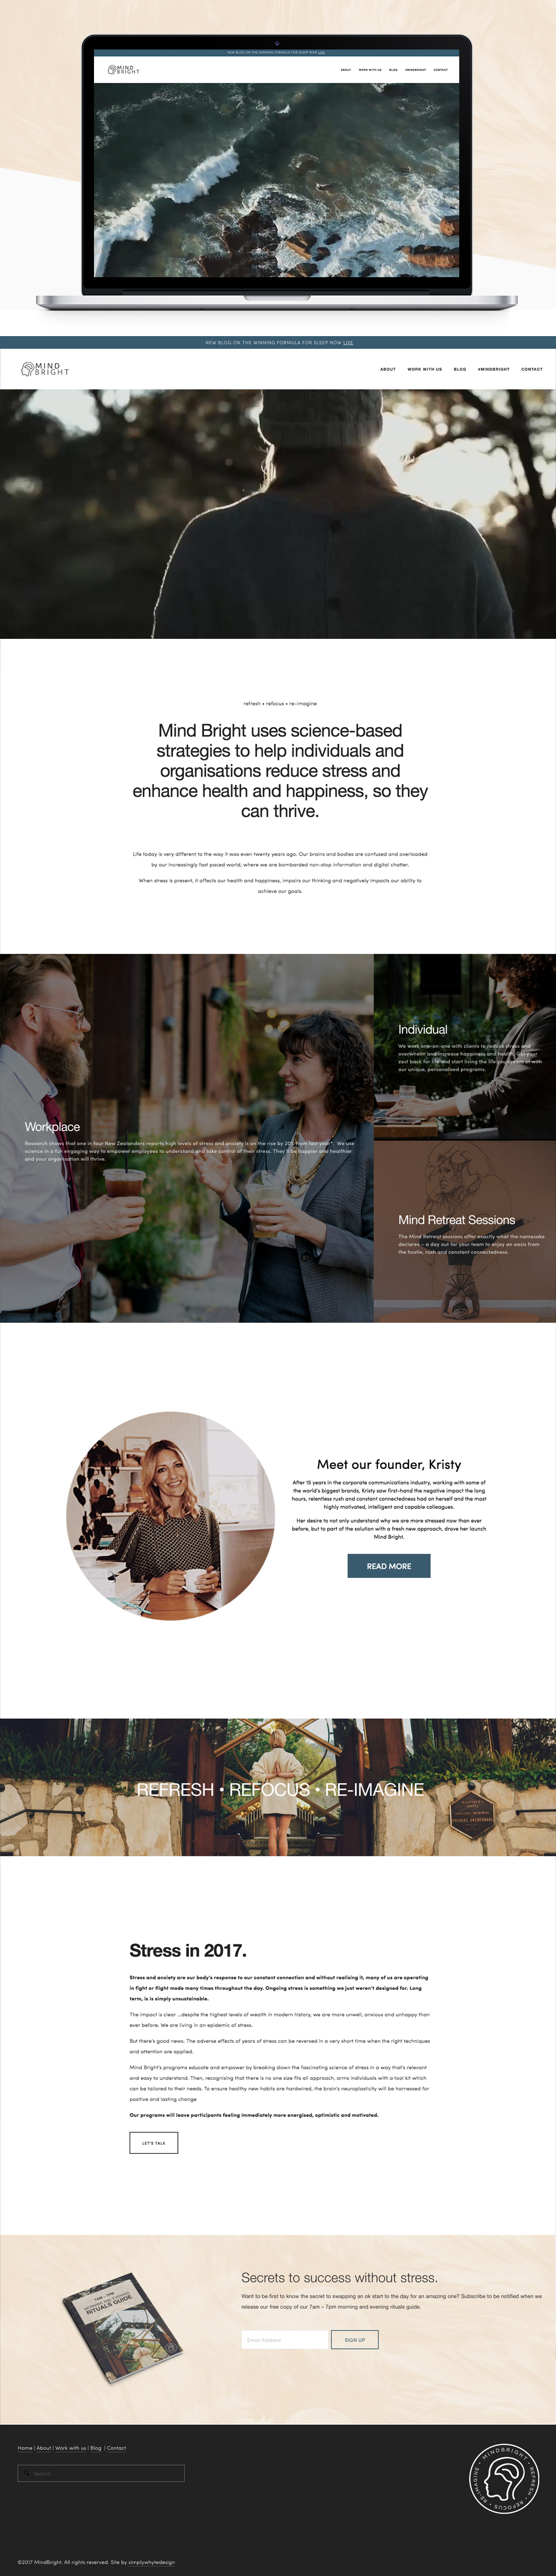 mindbright_squarespace_website_simply_whyte_designmindbright_squarespace_website_simply_whyte_design